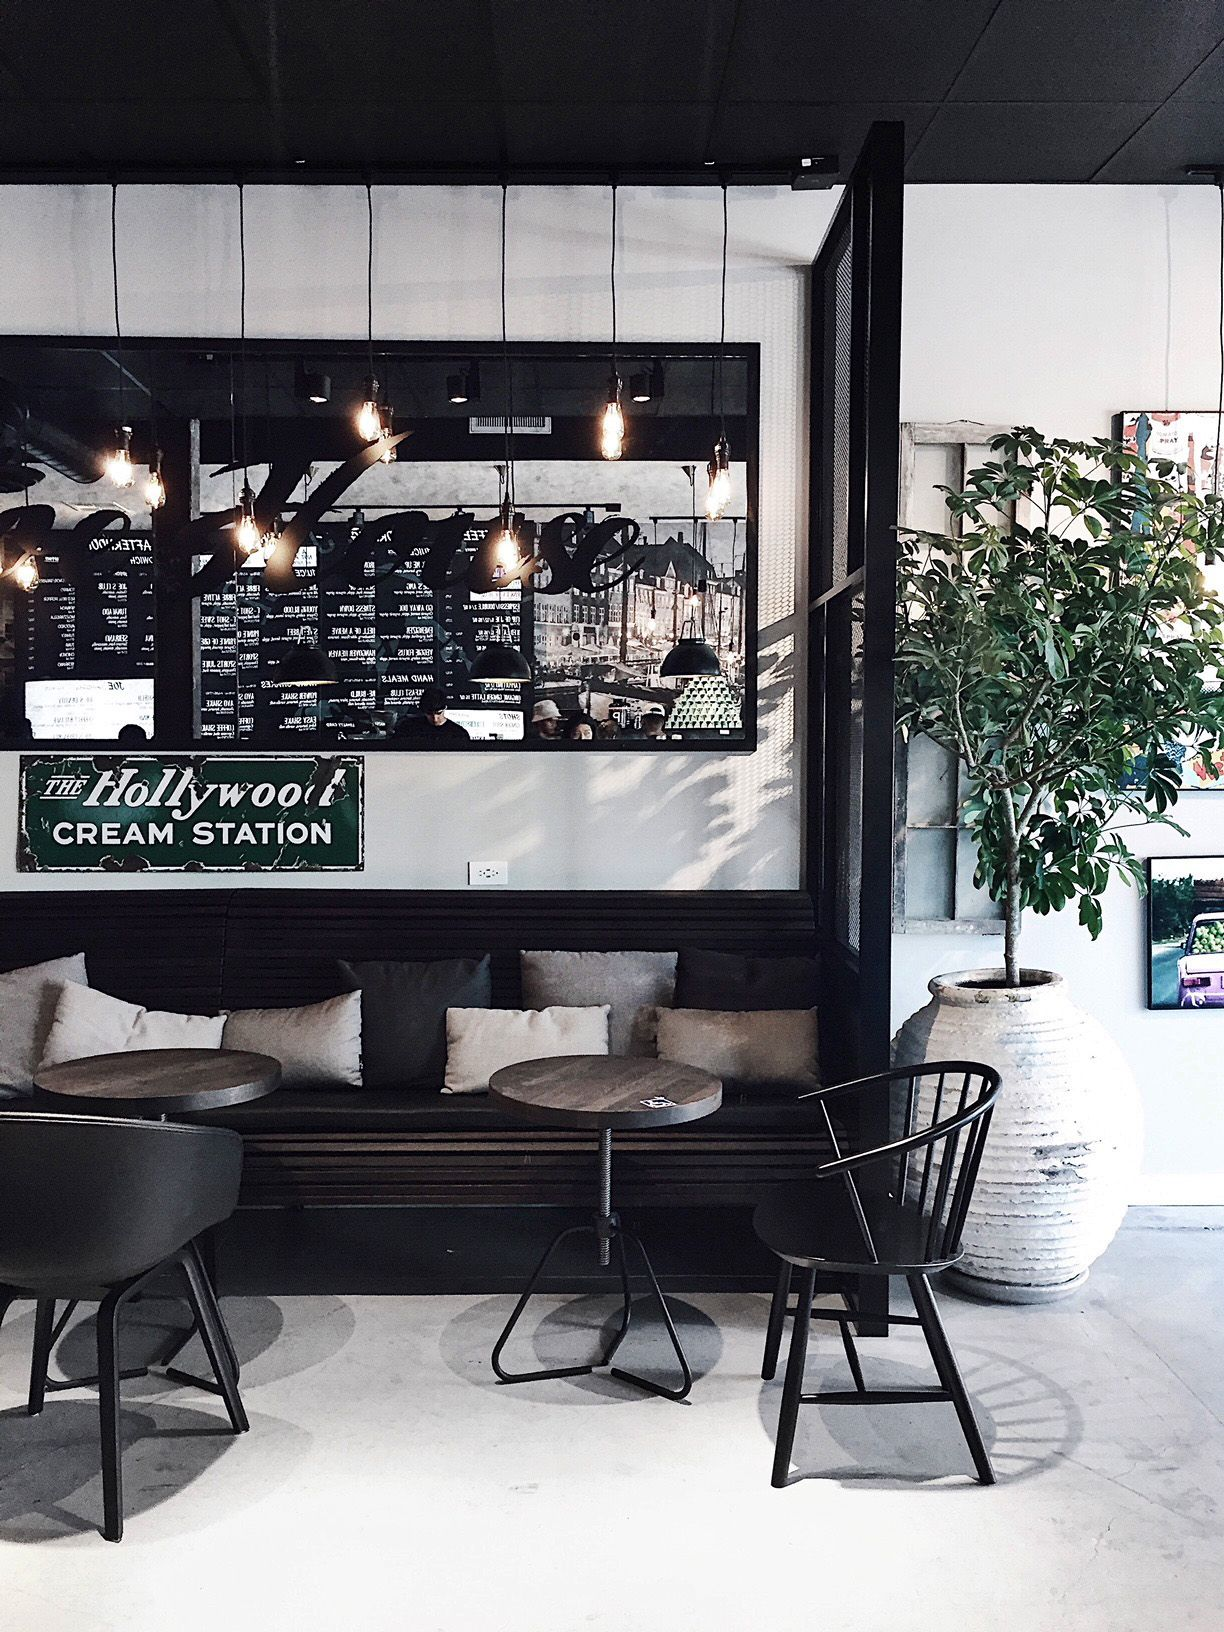 10 Favorite Coffee Shops In La Homey Oh My Coffee Shop Joe And The Juice Juice Bar Design